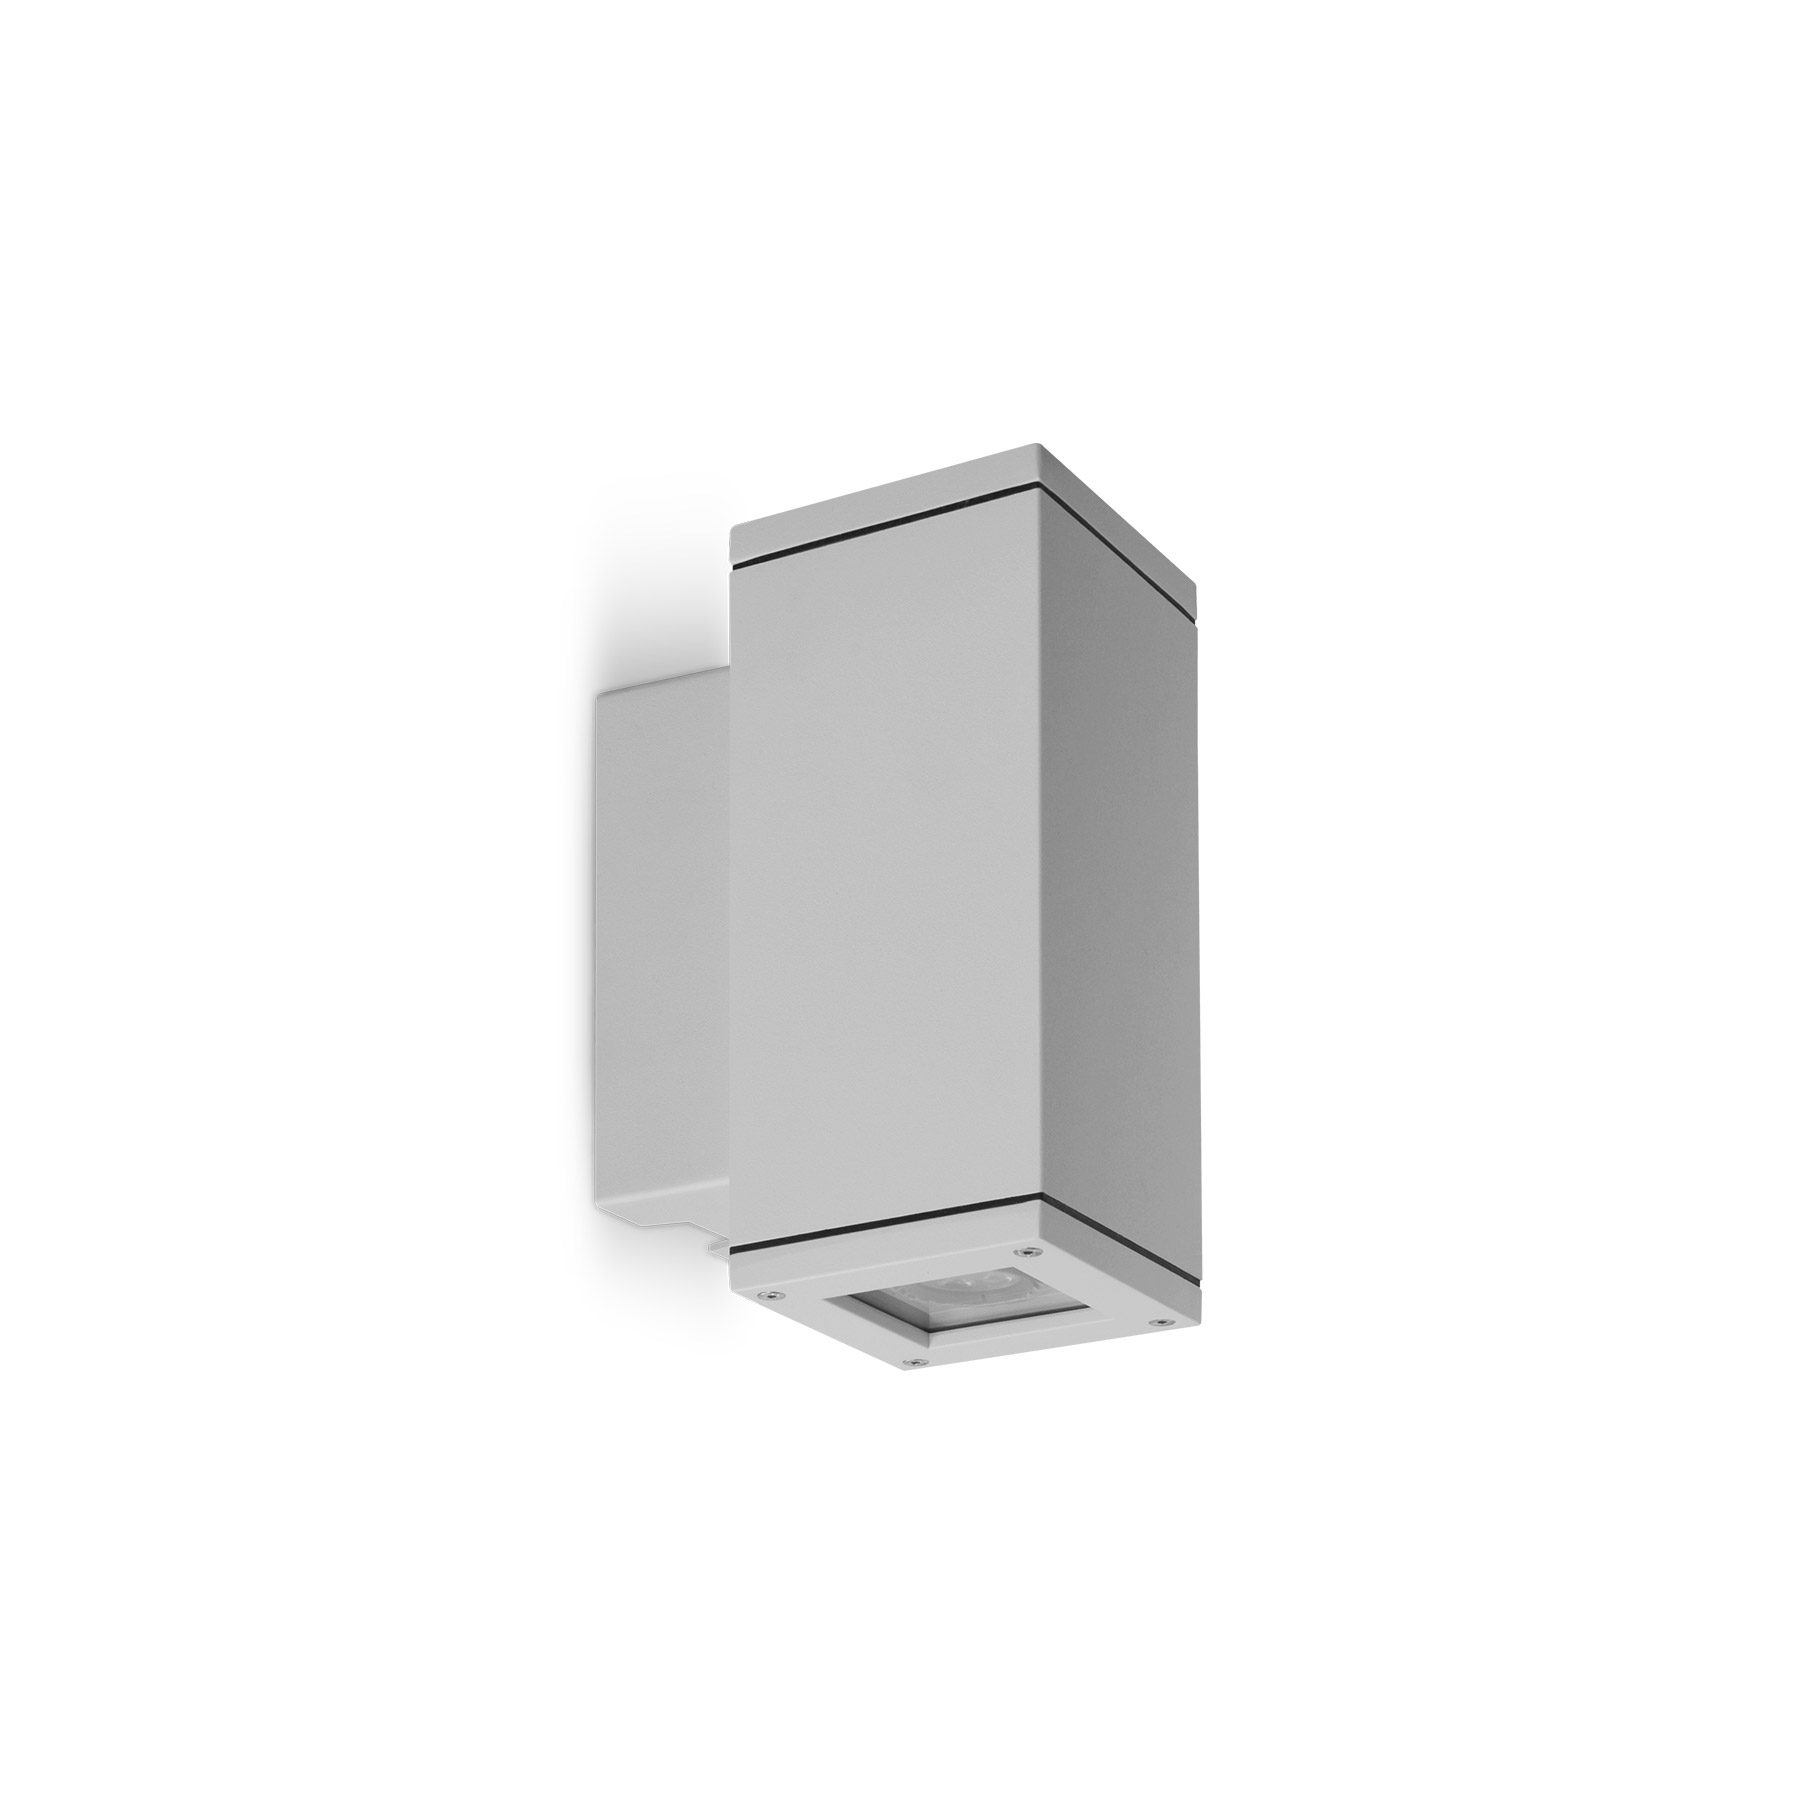 KUBUS Square Wall Up/Downlight